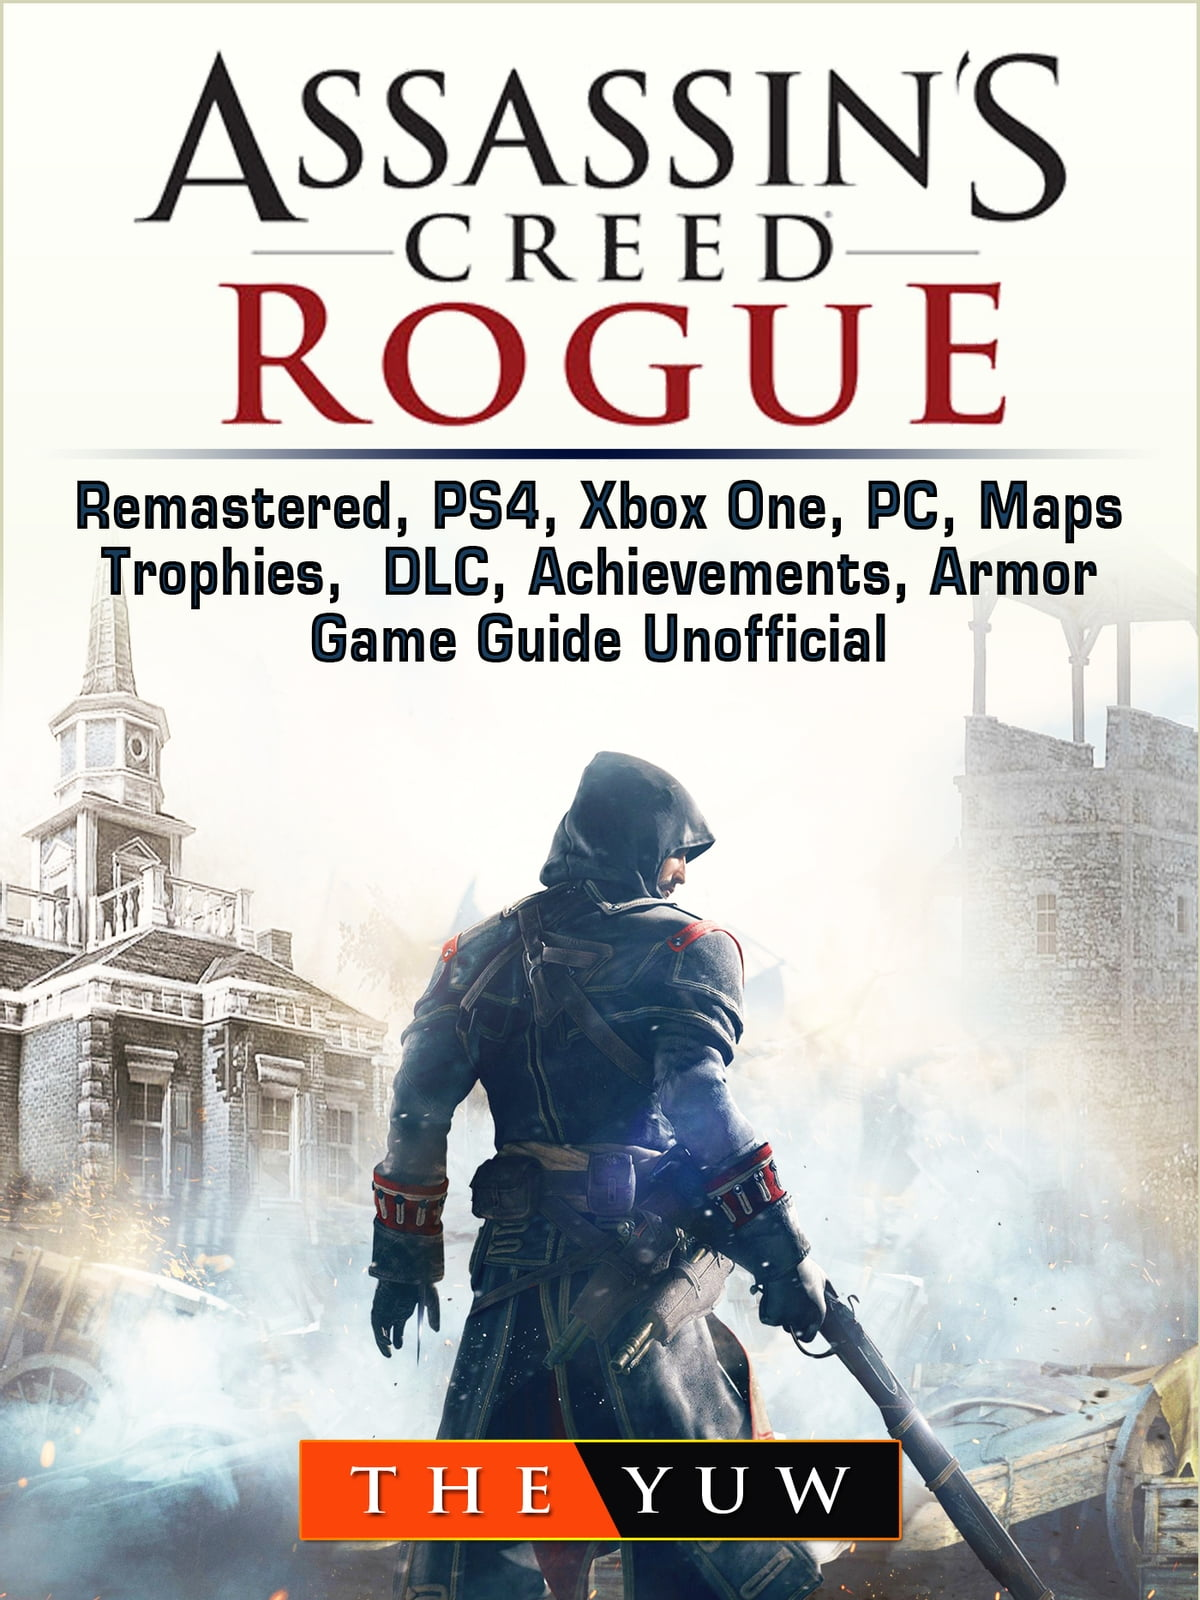 Assassins Creed Rogue Remastered Ps4 Xbox One Pc Maps